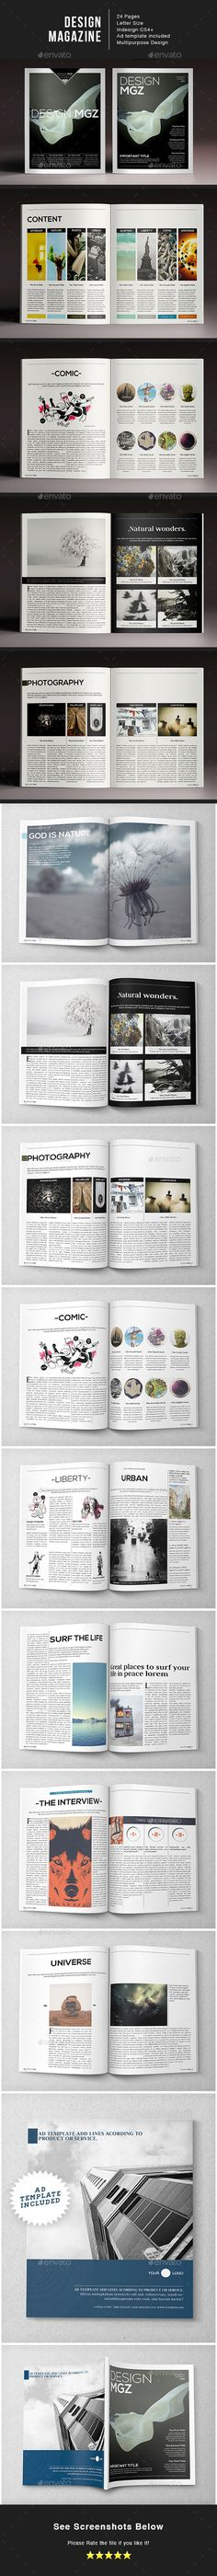 Design Magazine by LuuqasDesign Multipurpose magazine you can use in a lot of projects. Very easy to edit, just drop in your own images and texts, and its ready